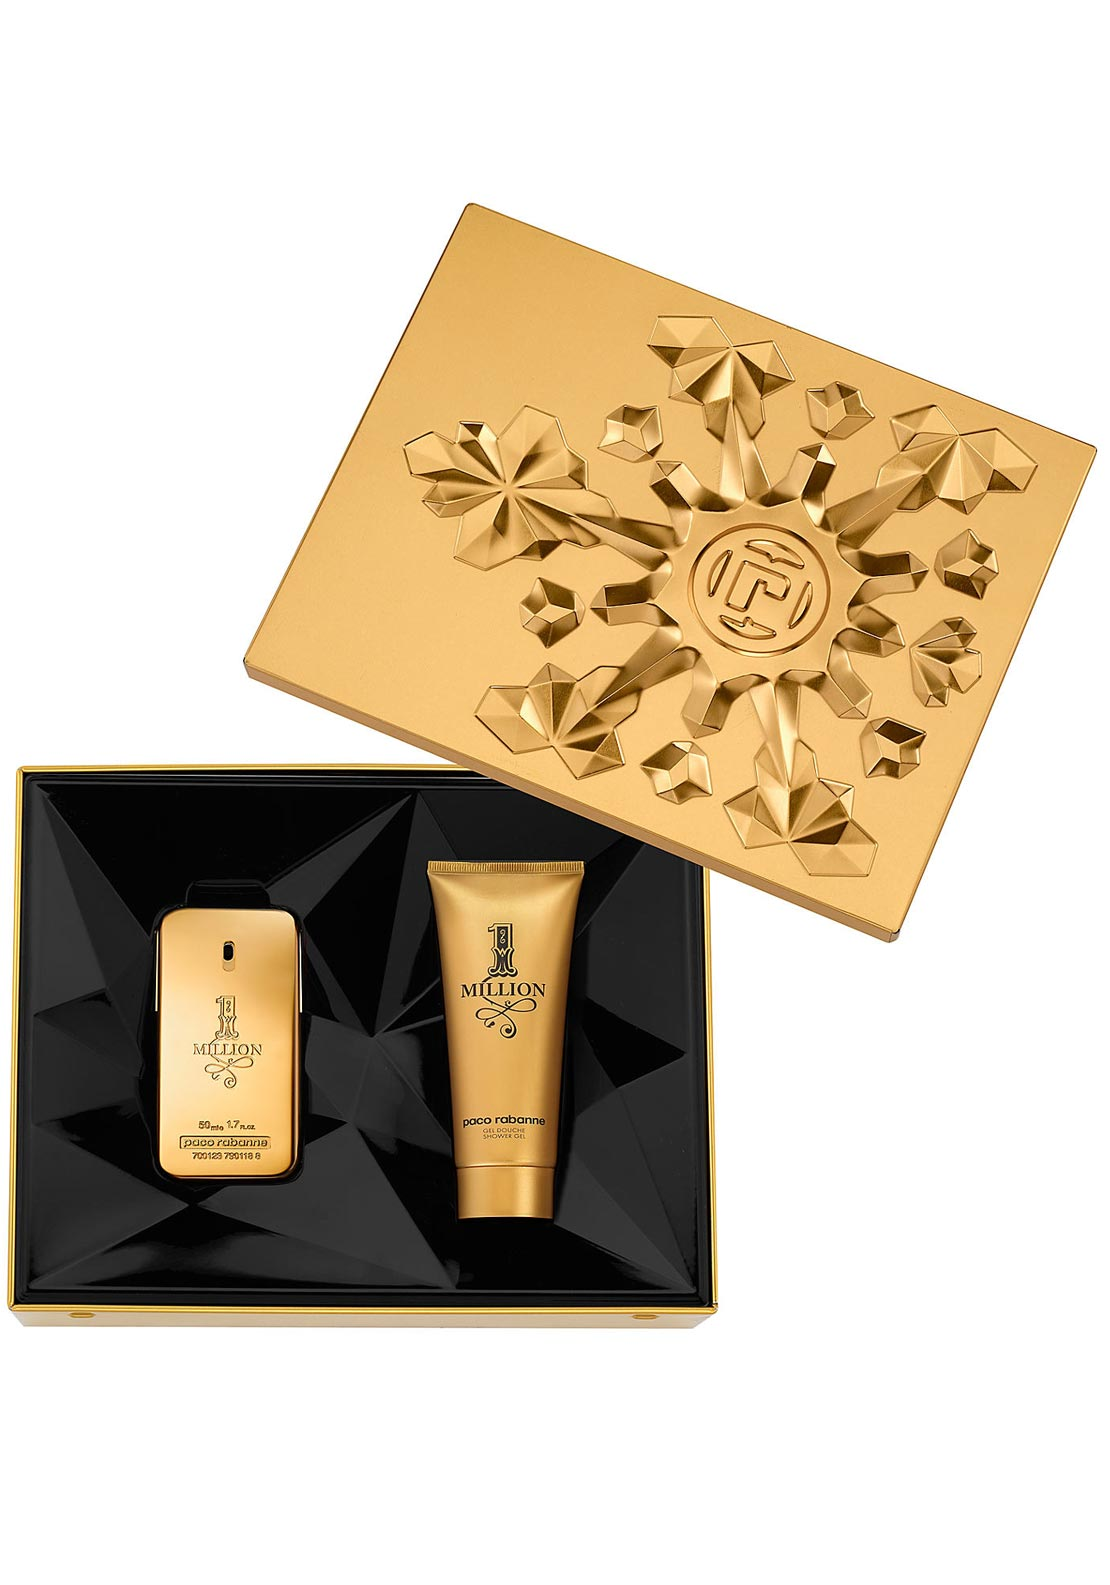 Paco Rabanne 1 Million Gift Set for Men, 50ml